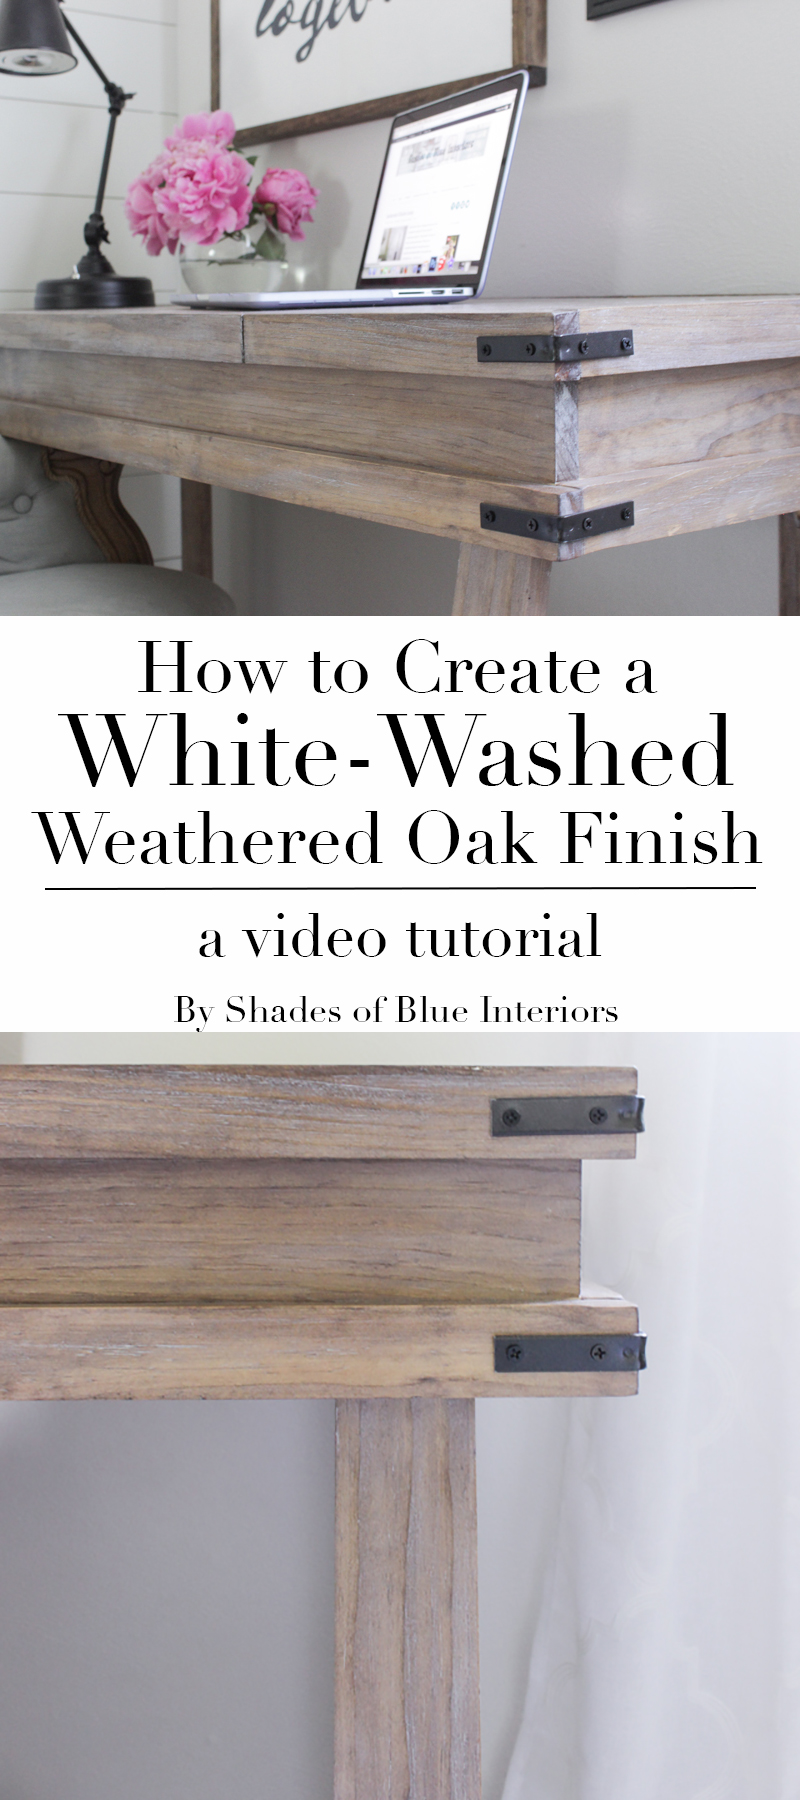 Creating A White Washed Weathered Oak Finish Video